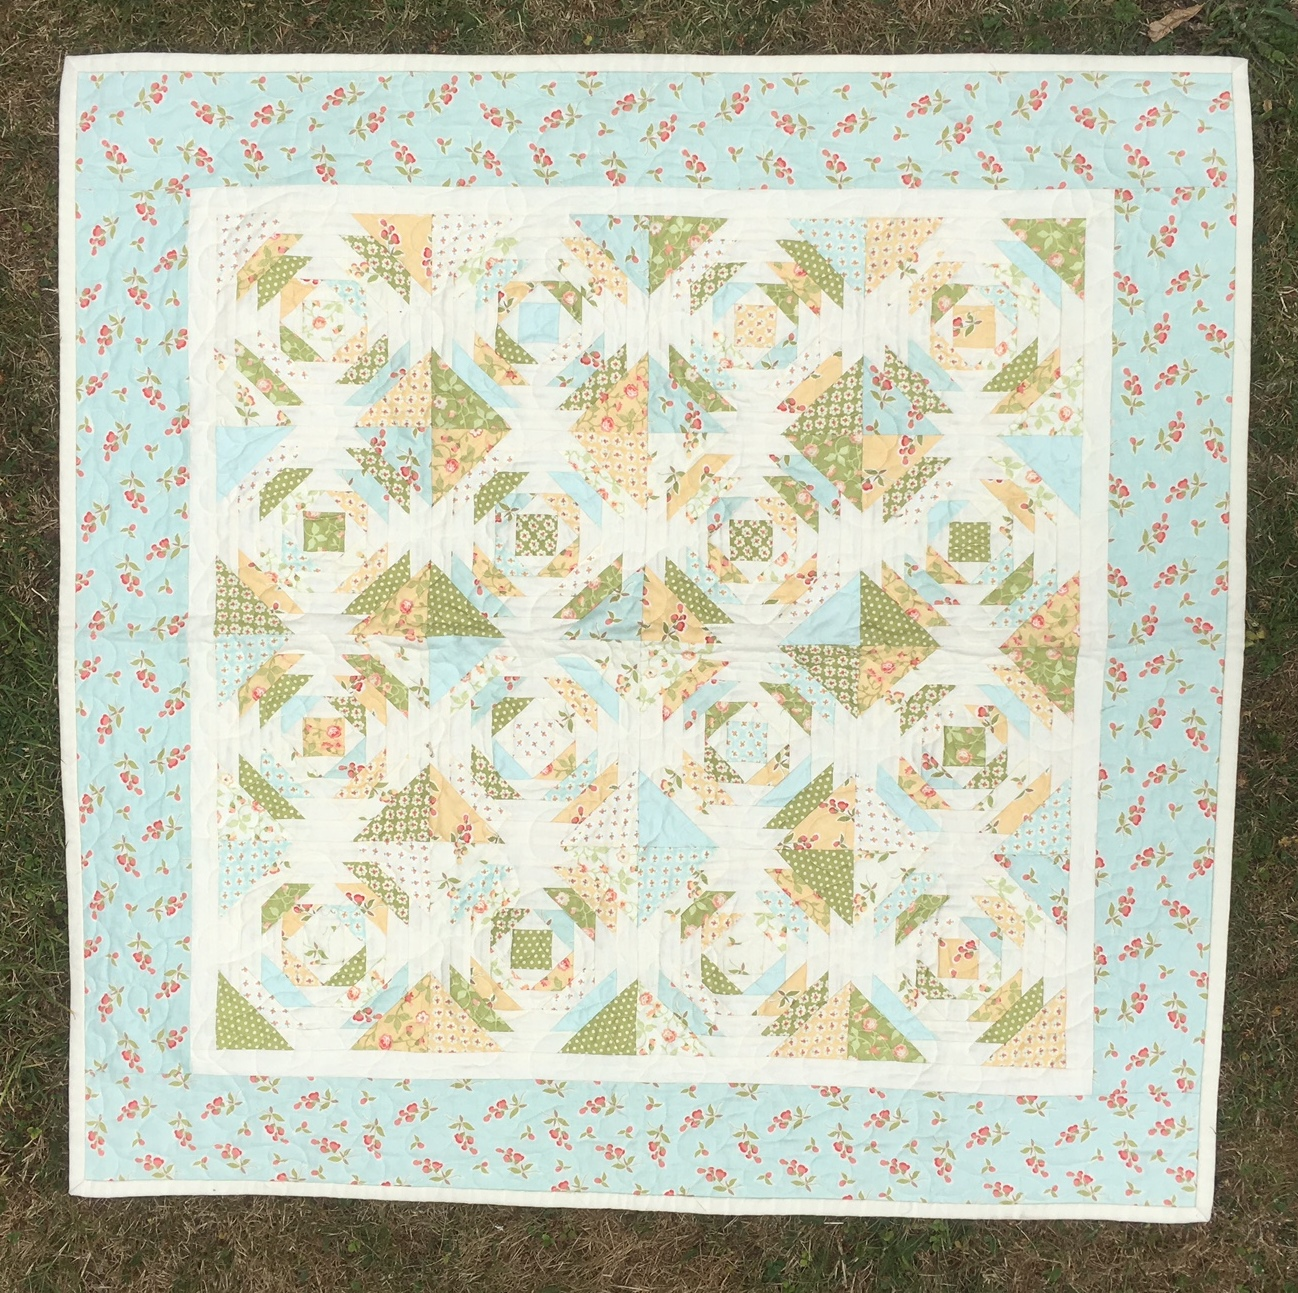 Janet quilt 6 cropped.jpg